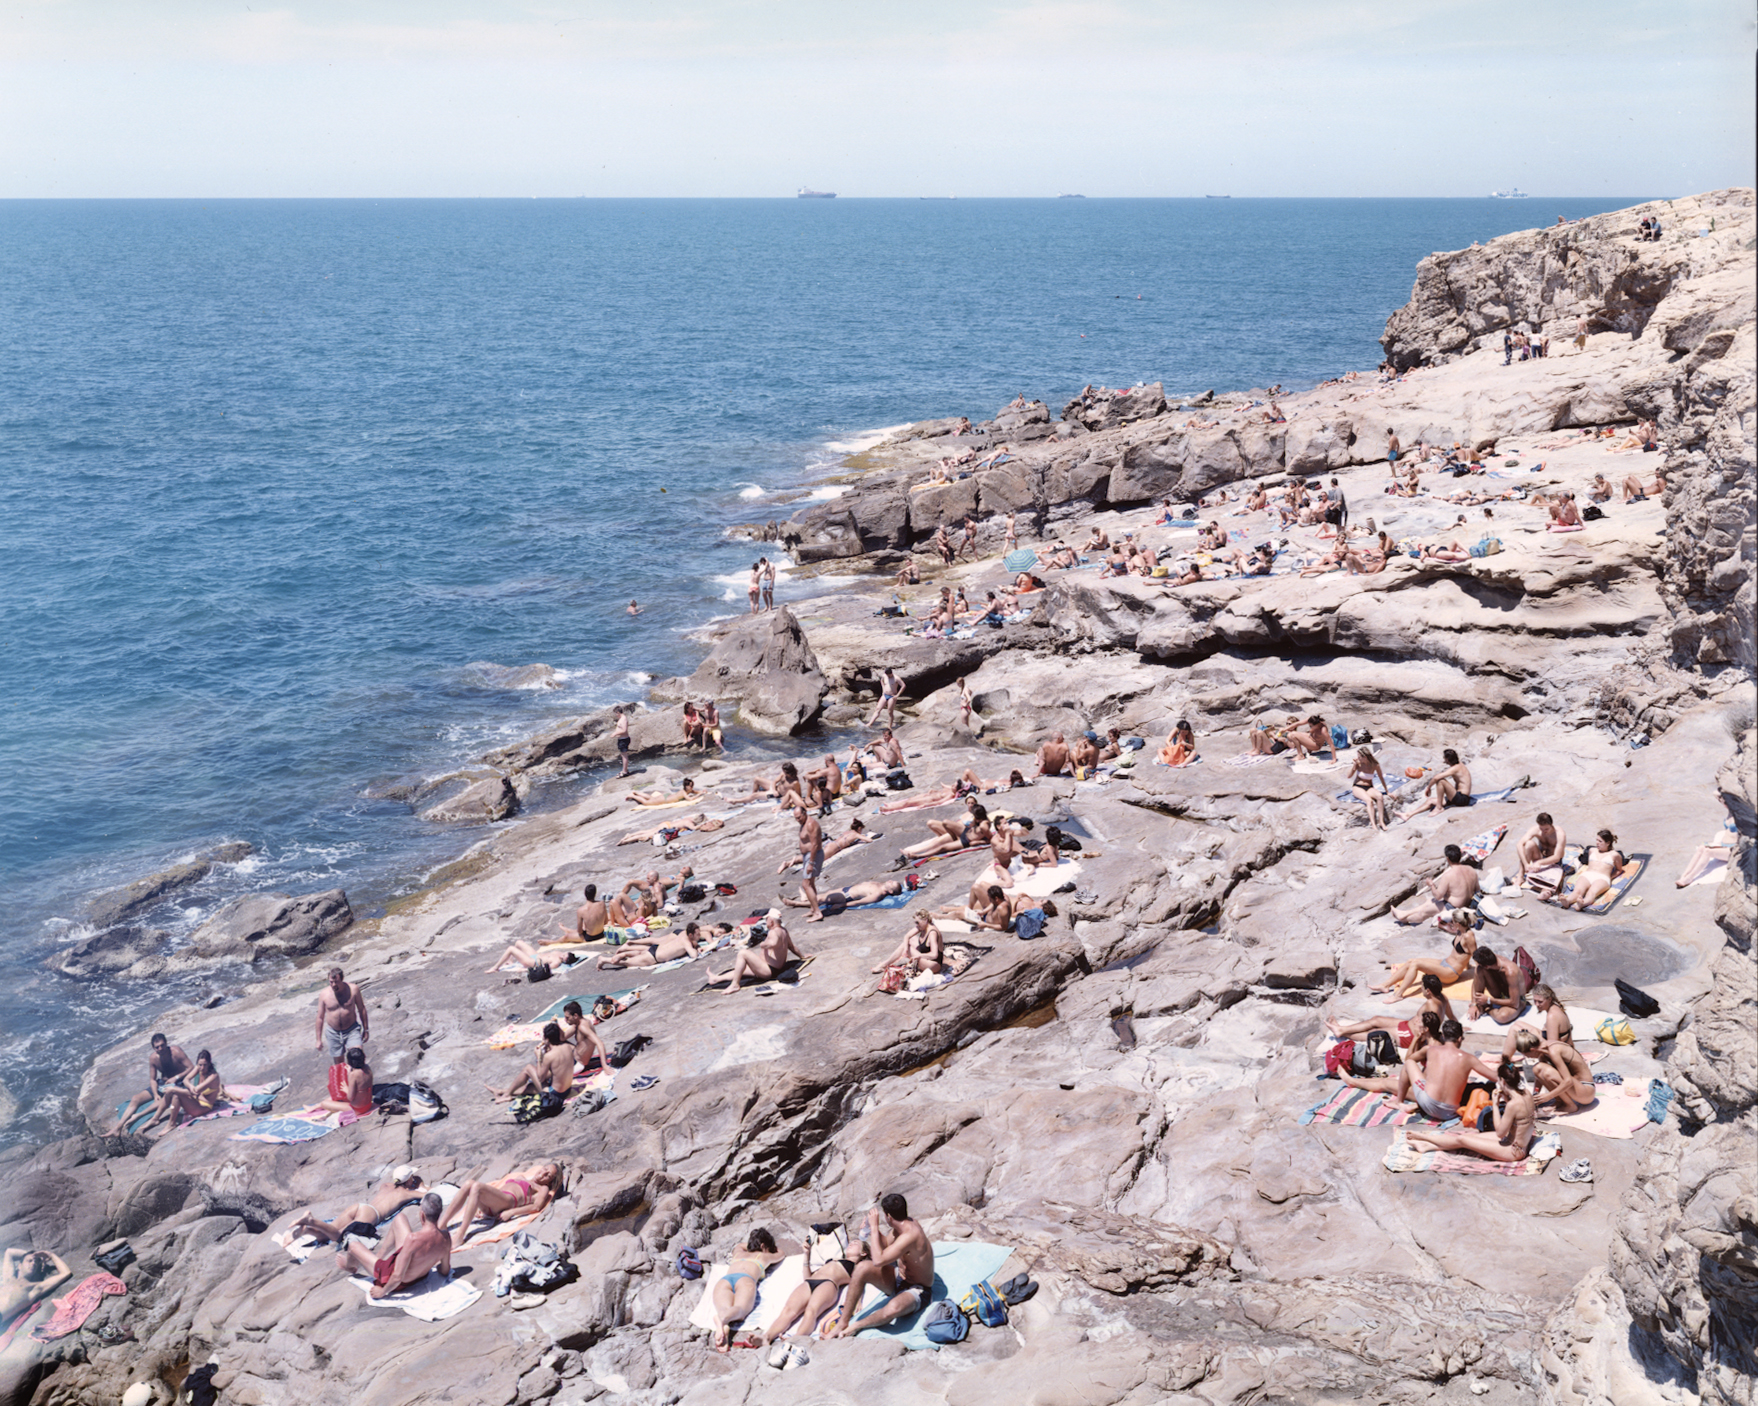 Massimo Vitali  Calafuria, Italy,  2007 chromogenic print with Diasec mount 60 x 72 in.  edition of 6